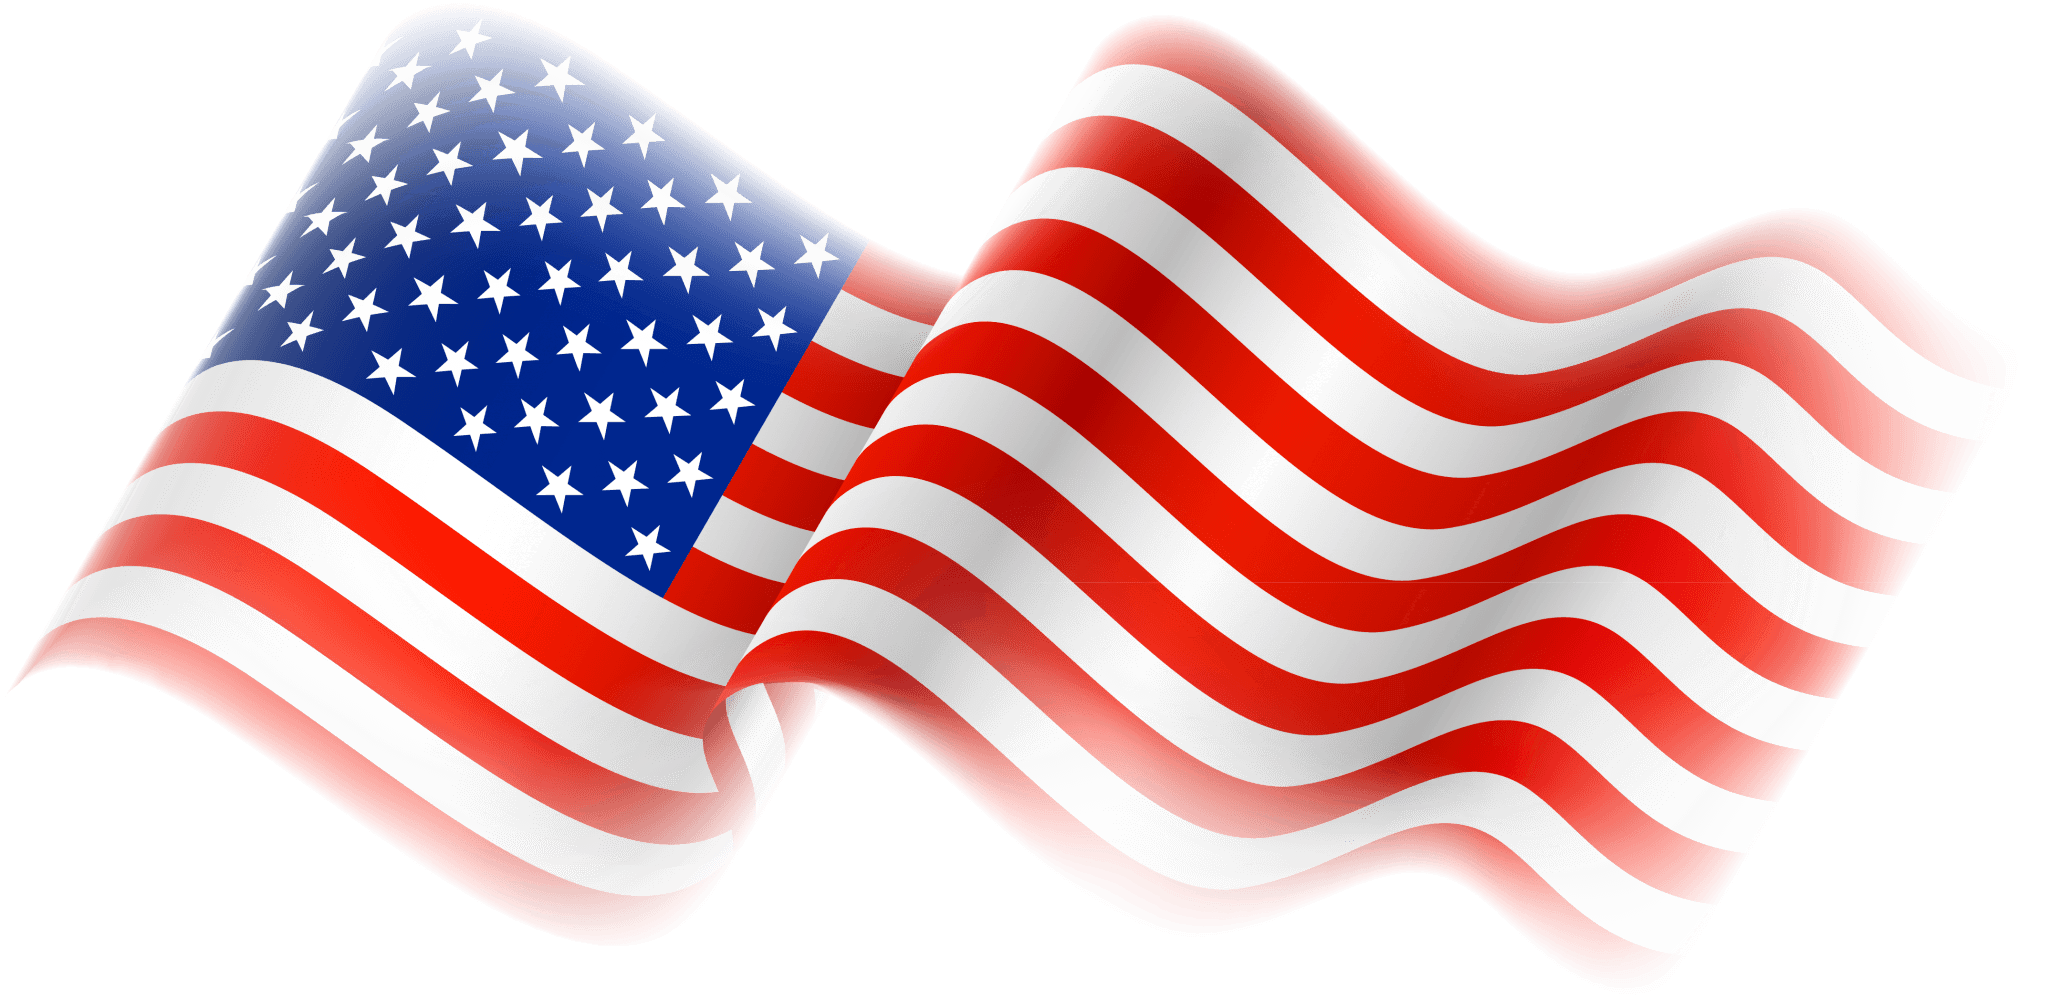 2484x1278 Free Desktop Wallpaper Downloads American Flag 2484 X 1278 491 KB